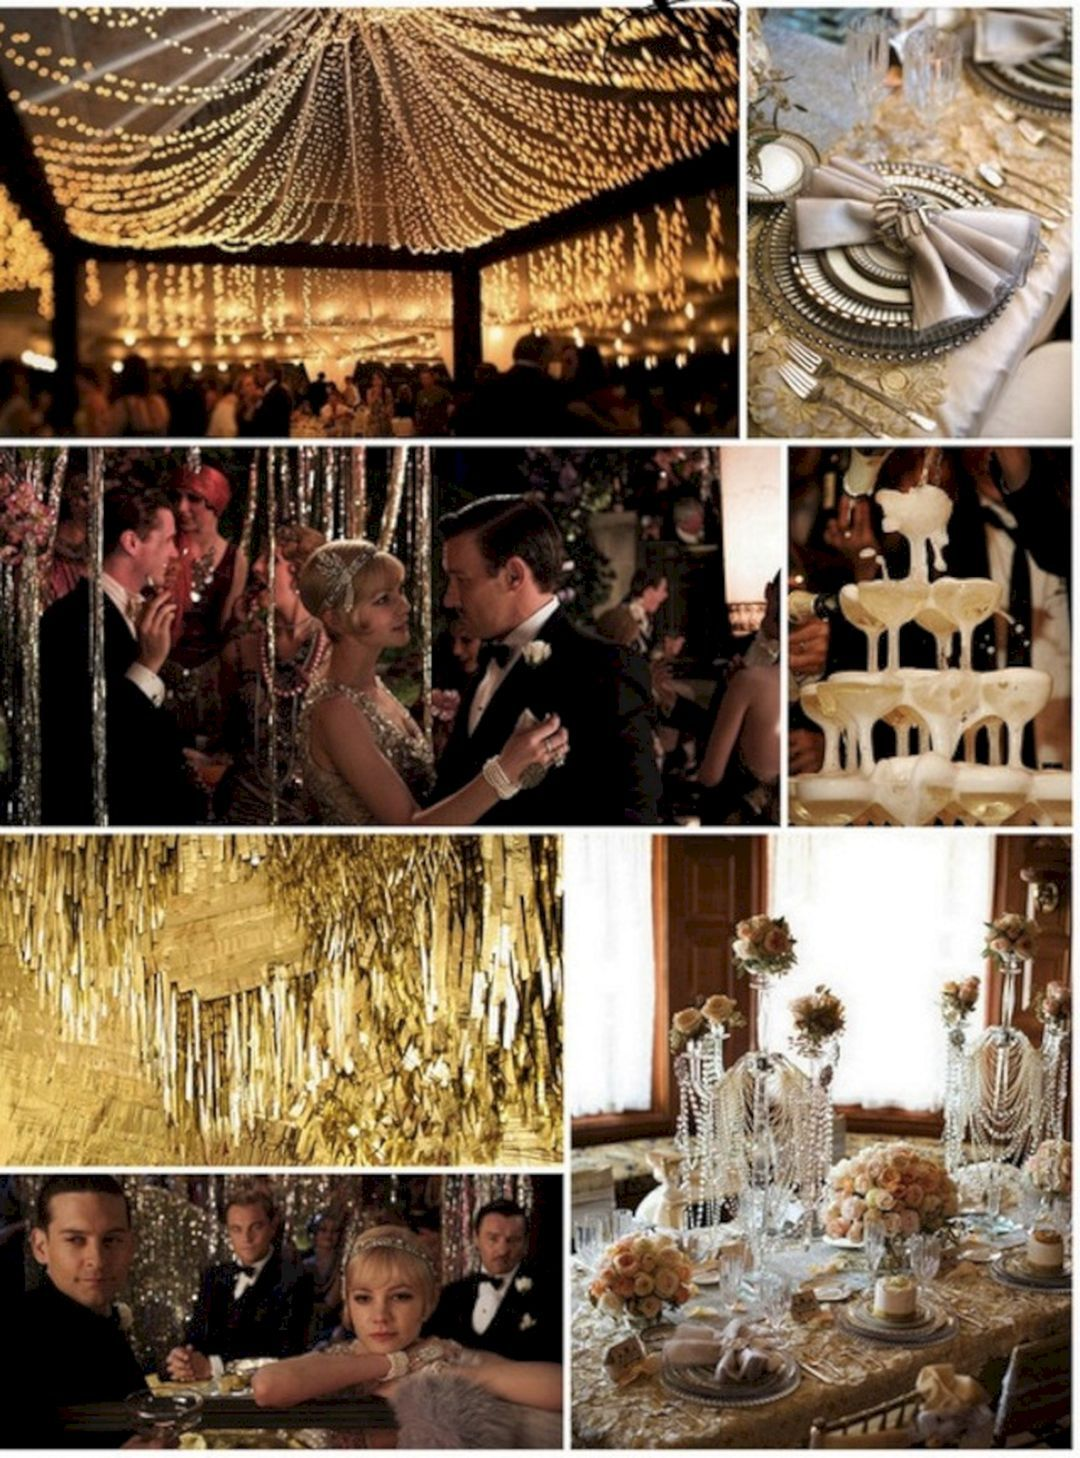 1920s wedding decoration ideas   Awesome Decorations Great Gatsby party Ideas  Gatsby